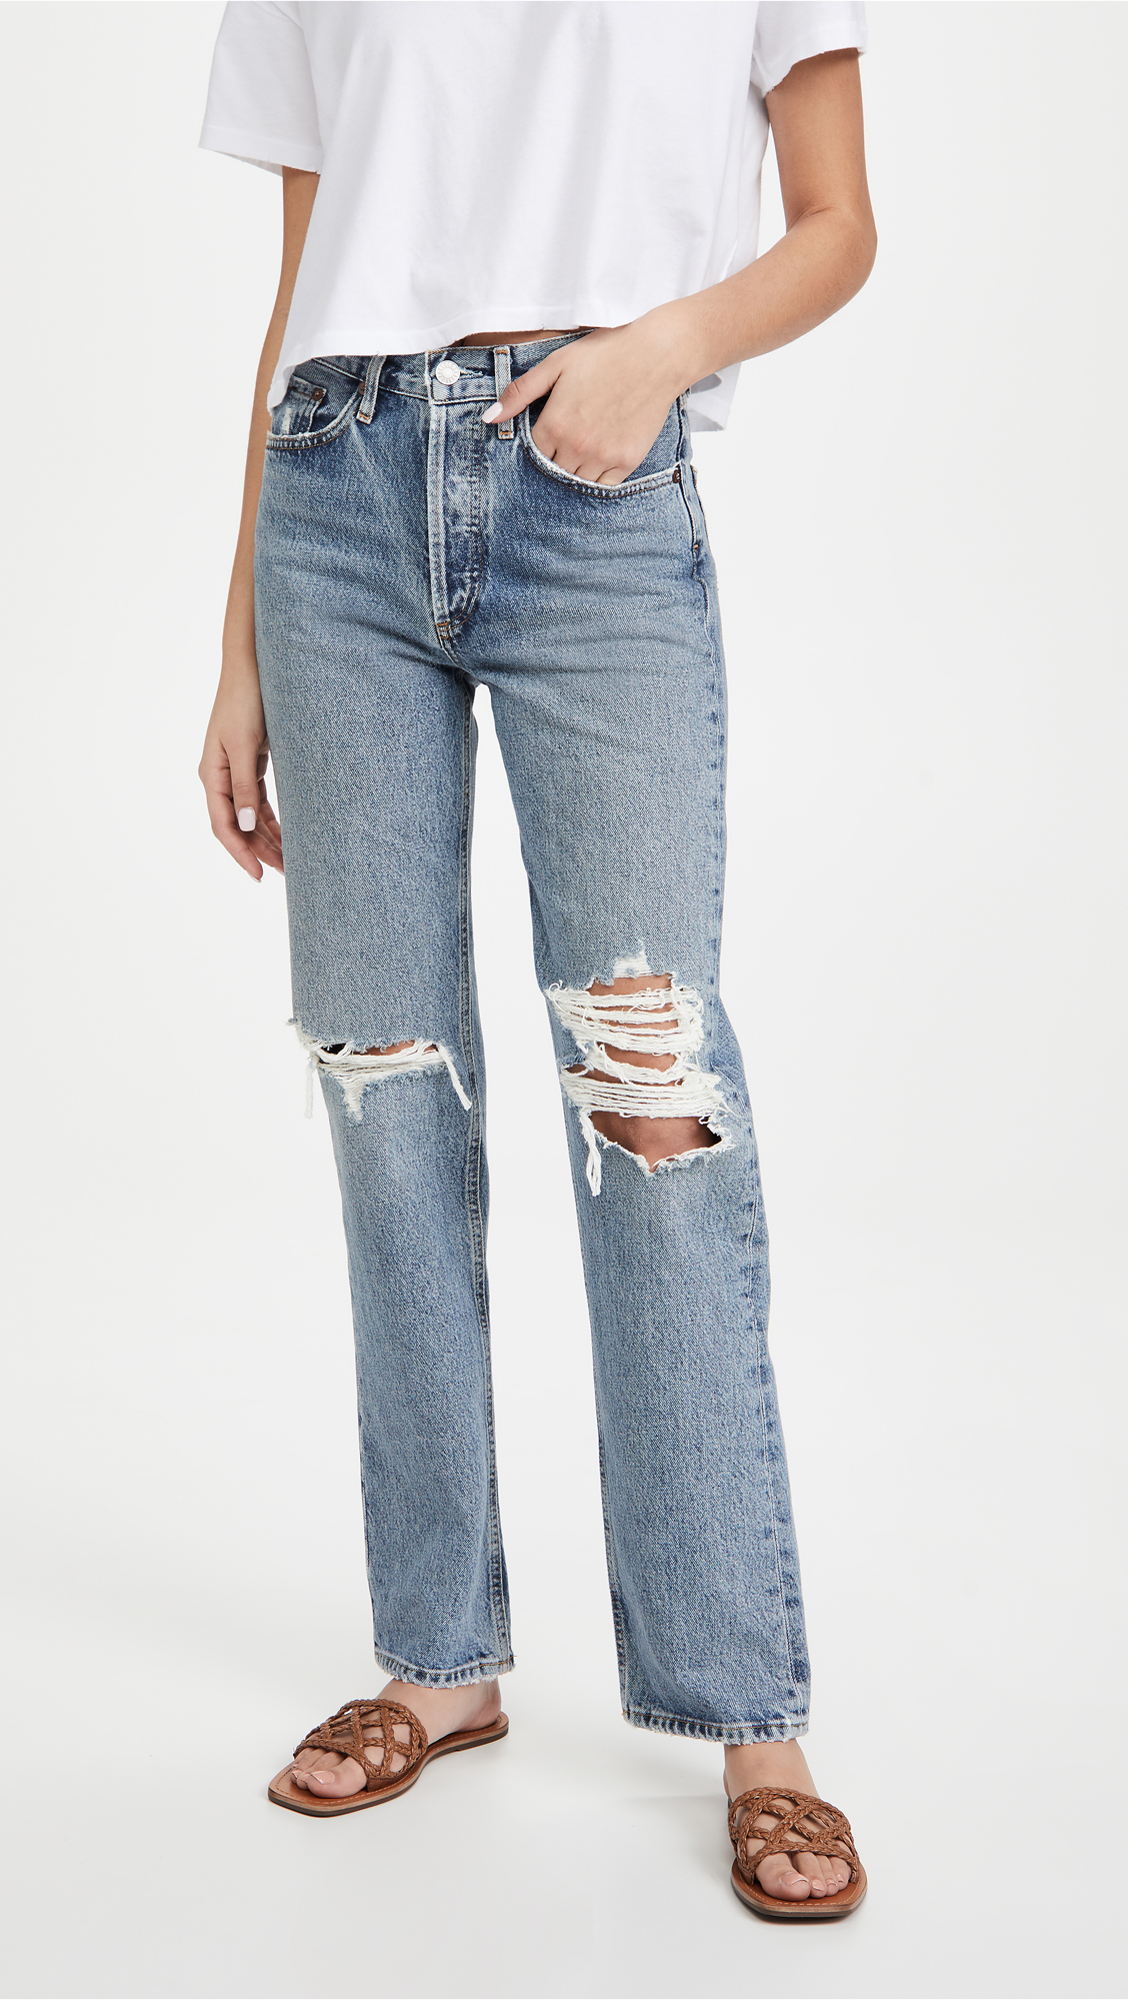 AGOLDE Lana Mid Rise Vintage Straight Jeans   A Few Must-Have Spring Accessories